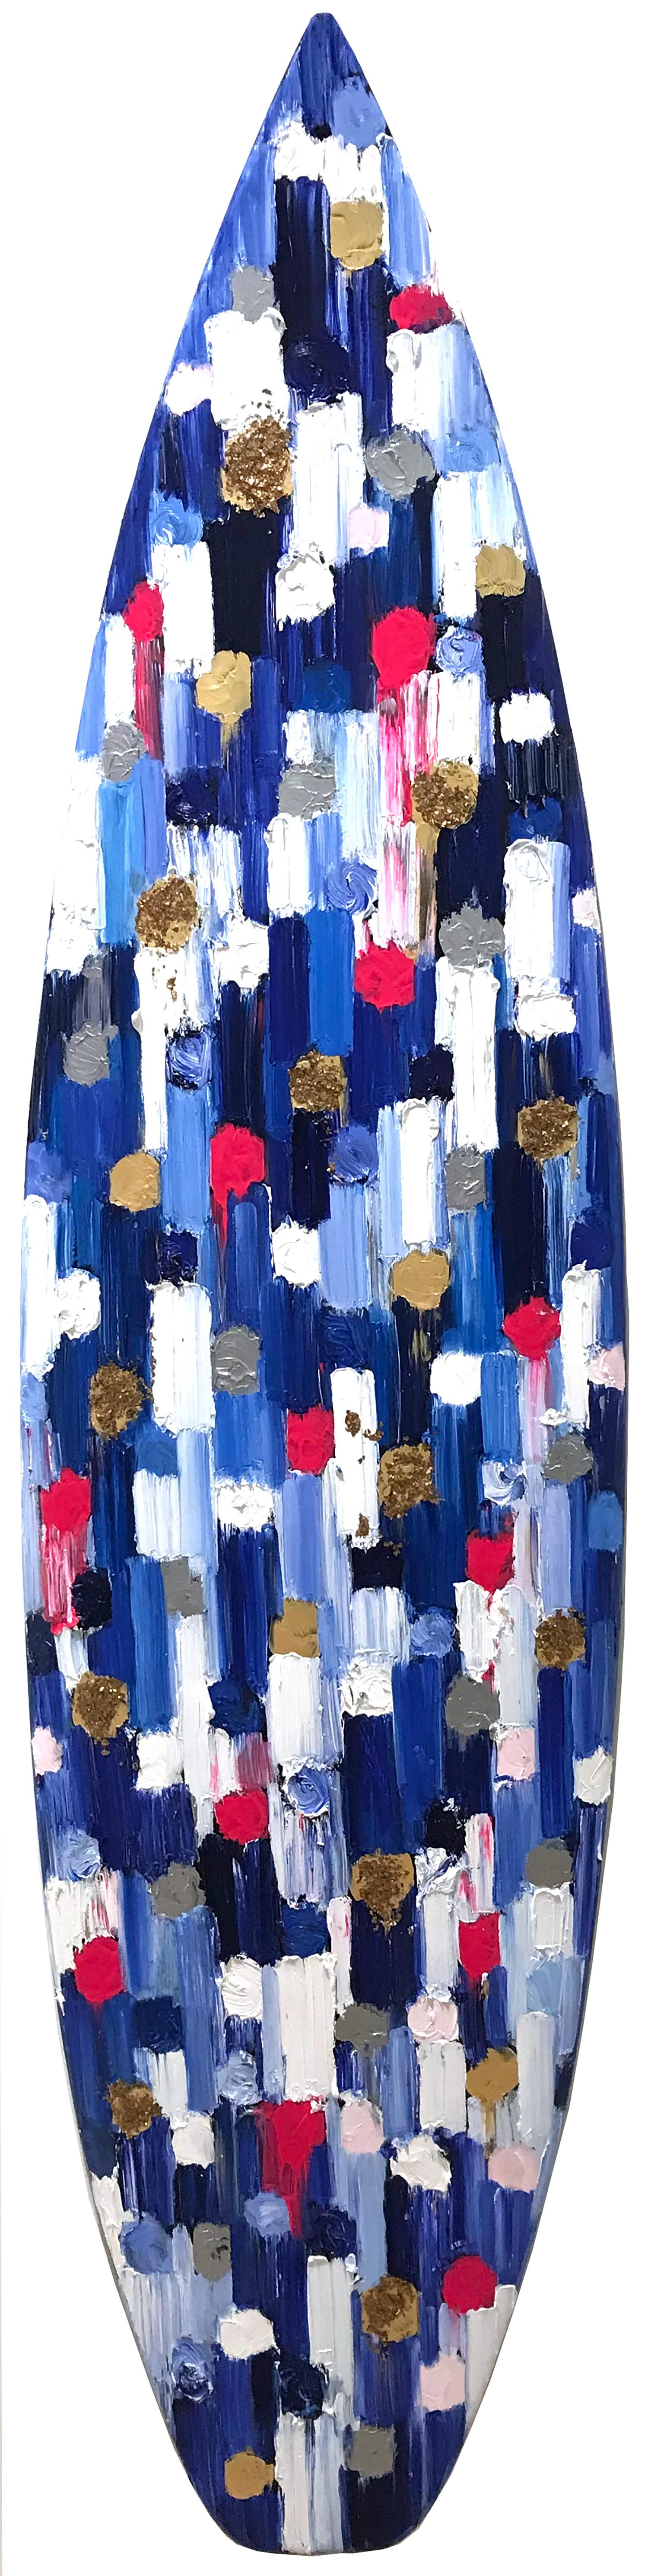 """""""Dripping Dots - Monaco Surf"""" Colorful Abstract Oil Painting on a Surf Board"""